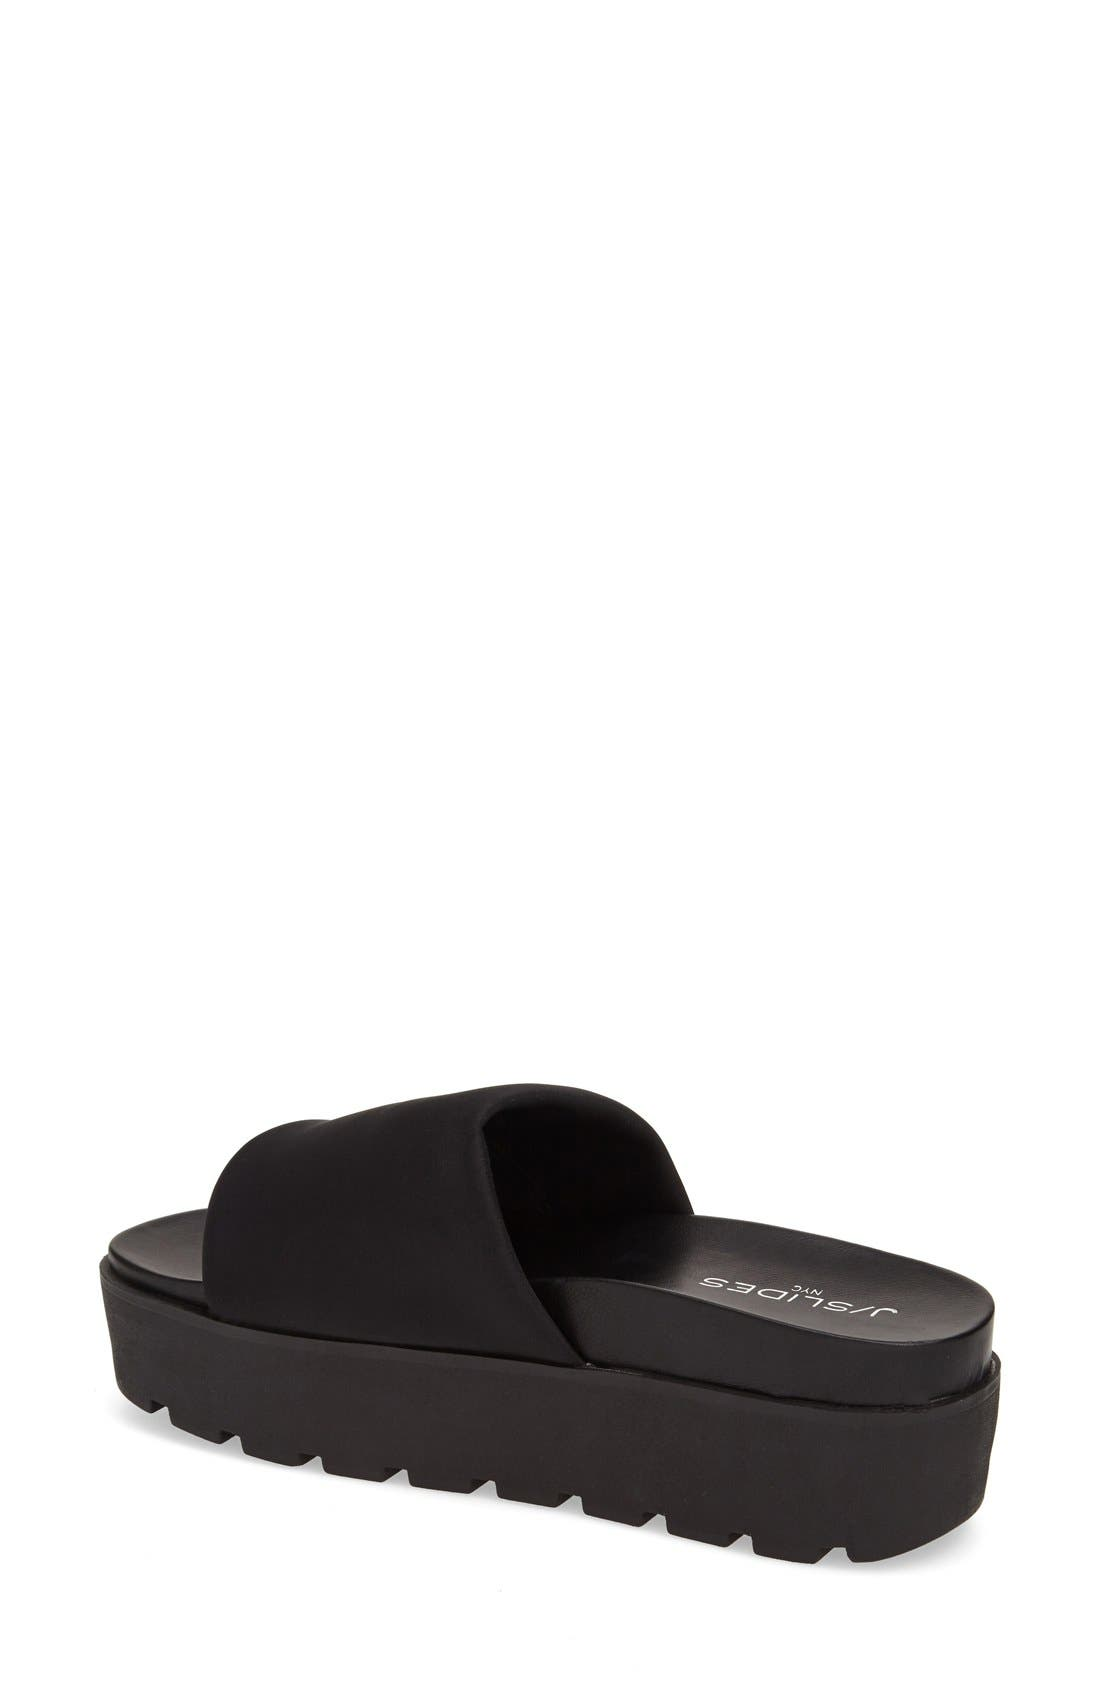 Alternate Image 2  - JSlides 'Telly' Flatform Slide Sandal (Women)